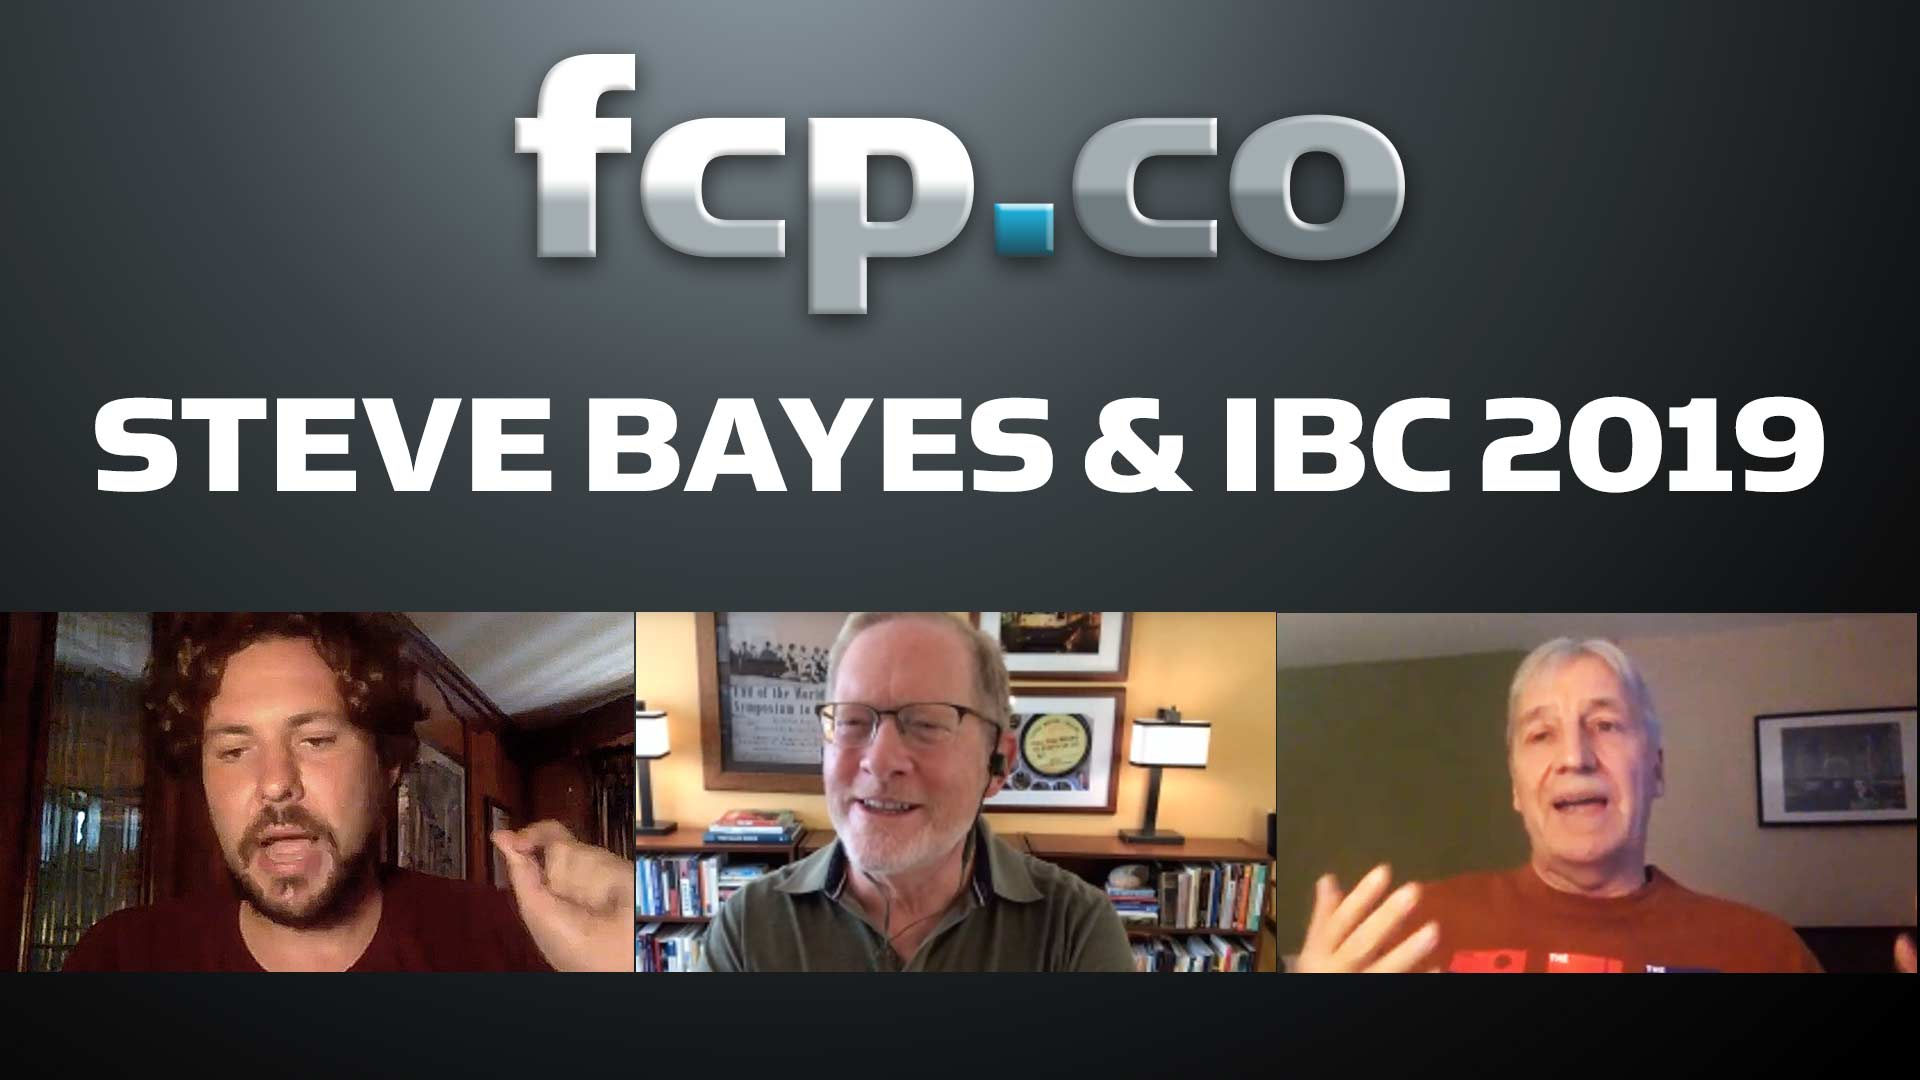 FCP.co Live Show 3 We Welcome Steve Bayes and Preview IBC 2019